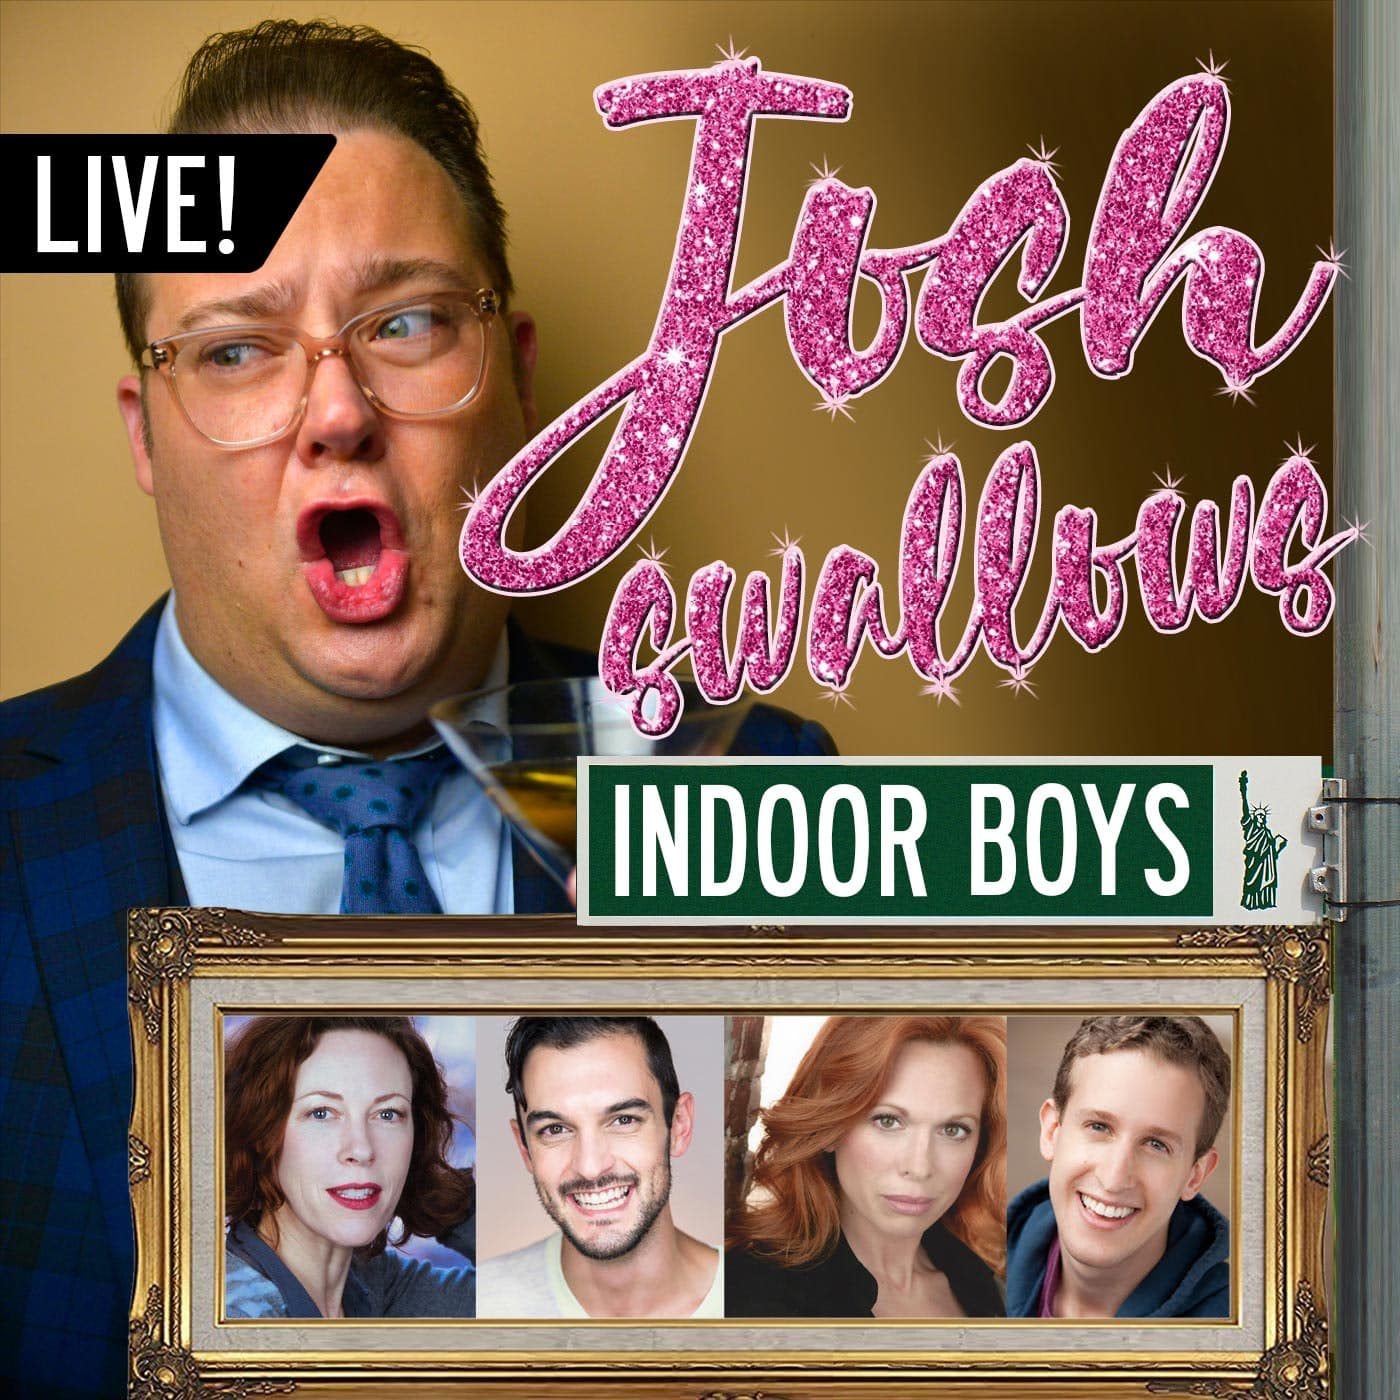 Ep39 - LIVE: INDOOR BOYS - Alex Wyse, Wesley Taylor, Carolee Carmello, & Veanne Cox